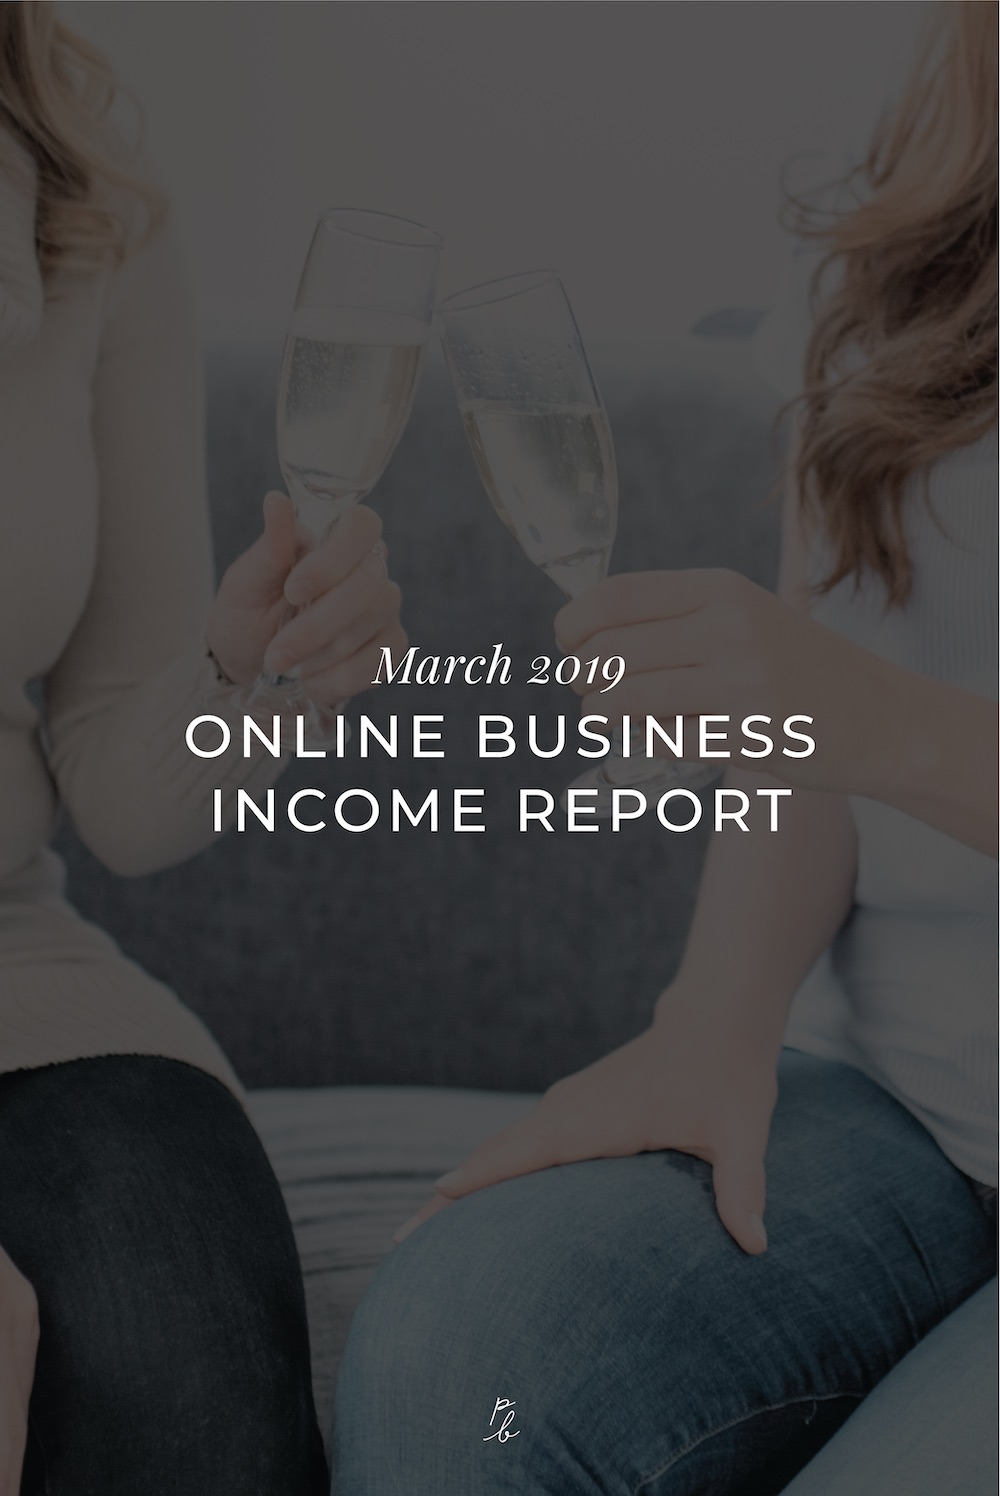 2-March 2019 online business income report.jpg